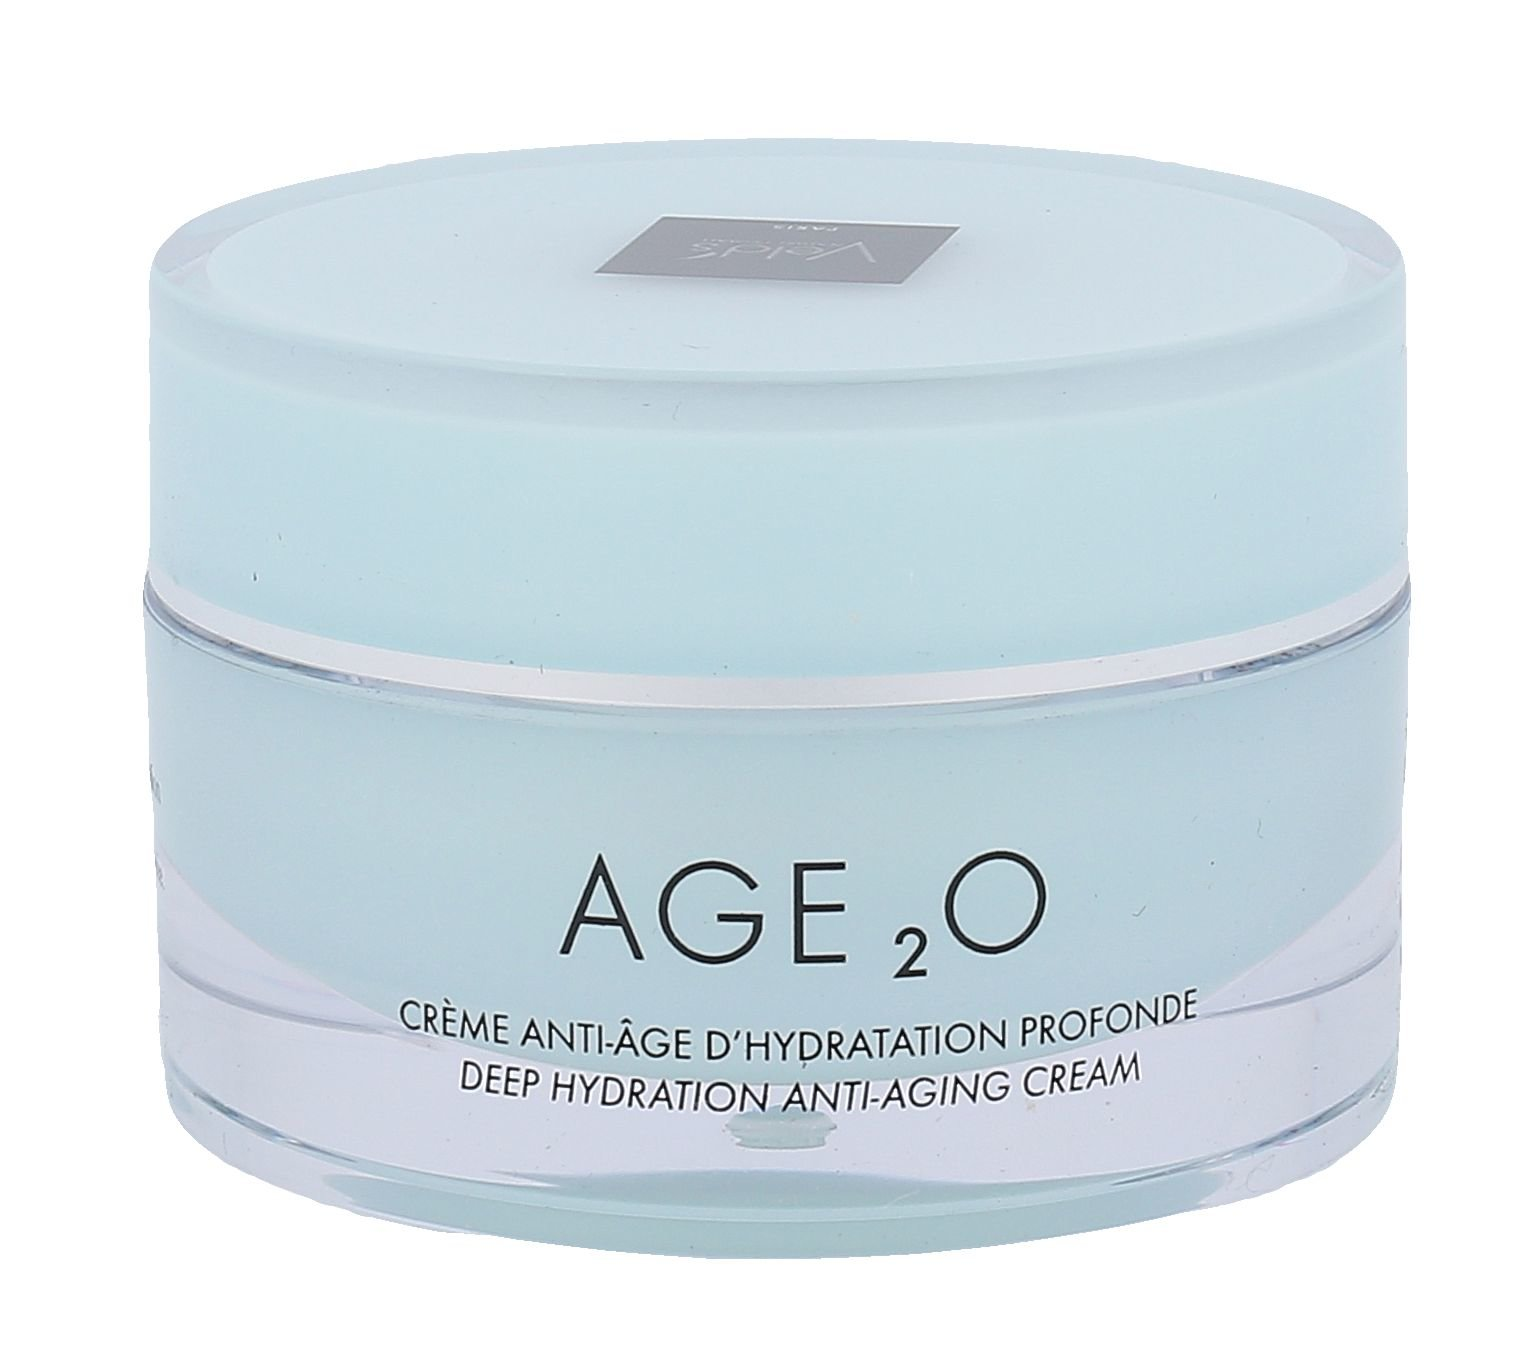 Veld´s Age 2O Cosmetic 50ml  Deep Hydration Anti-aging Cream